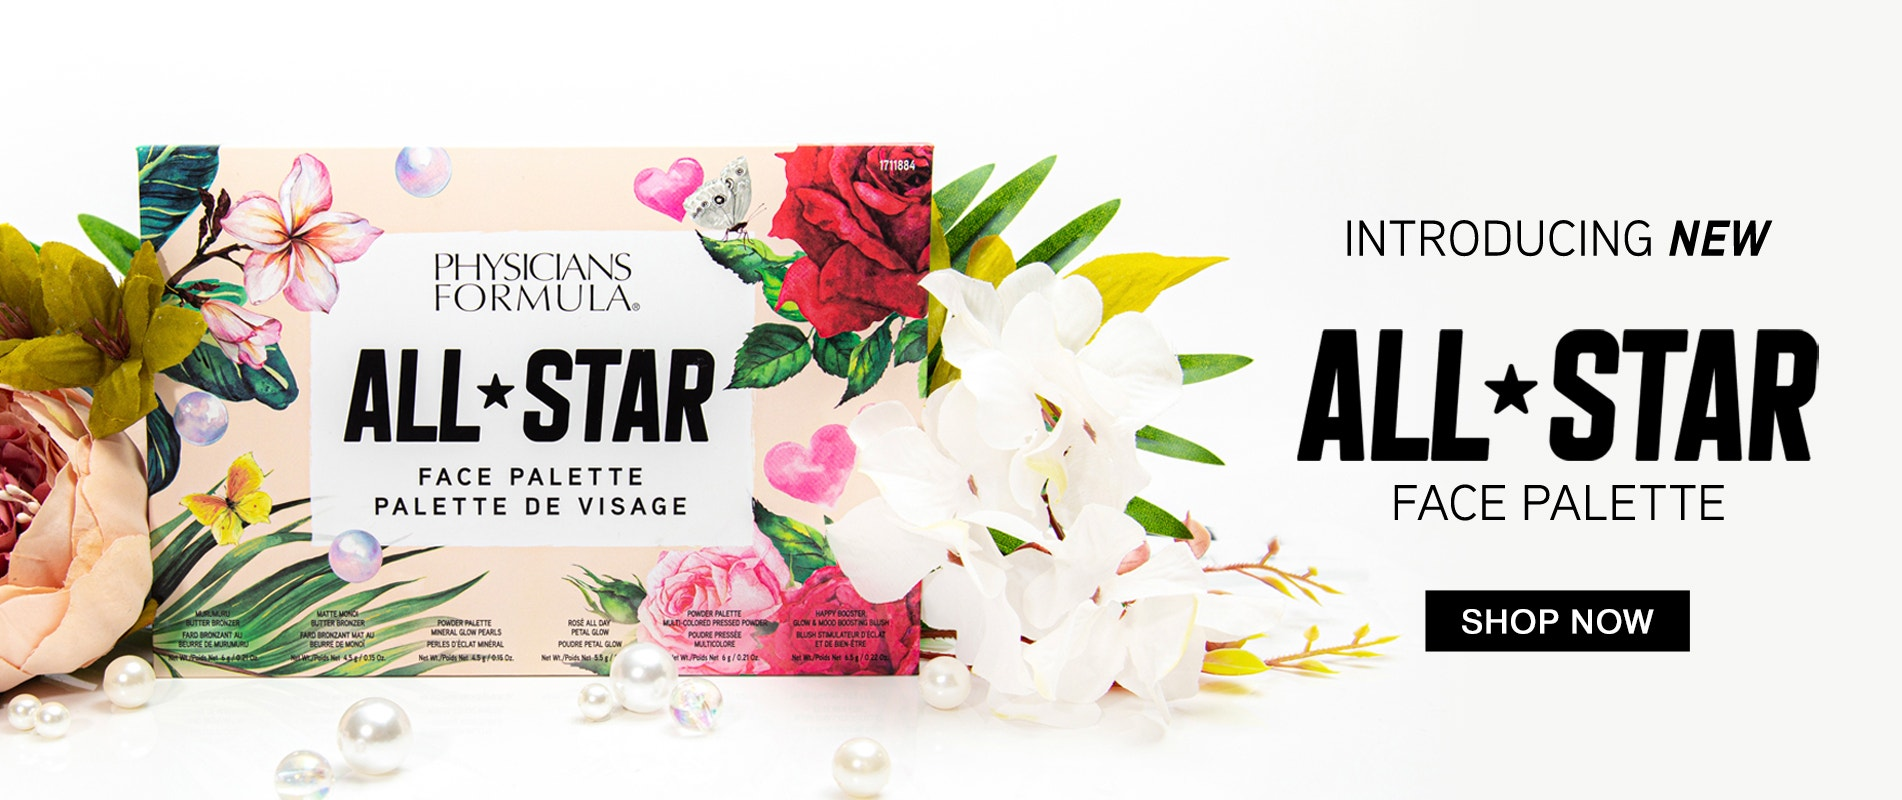 Physicians Formula | Introducing New All-Star Face Palette - Shop Now! Product front facing closed with flowers and white background